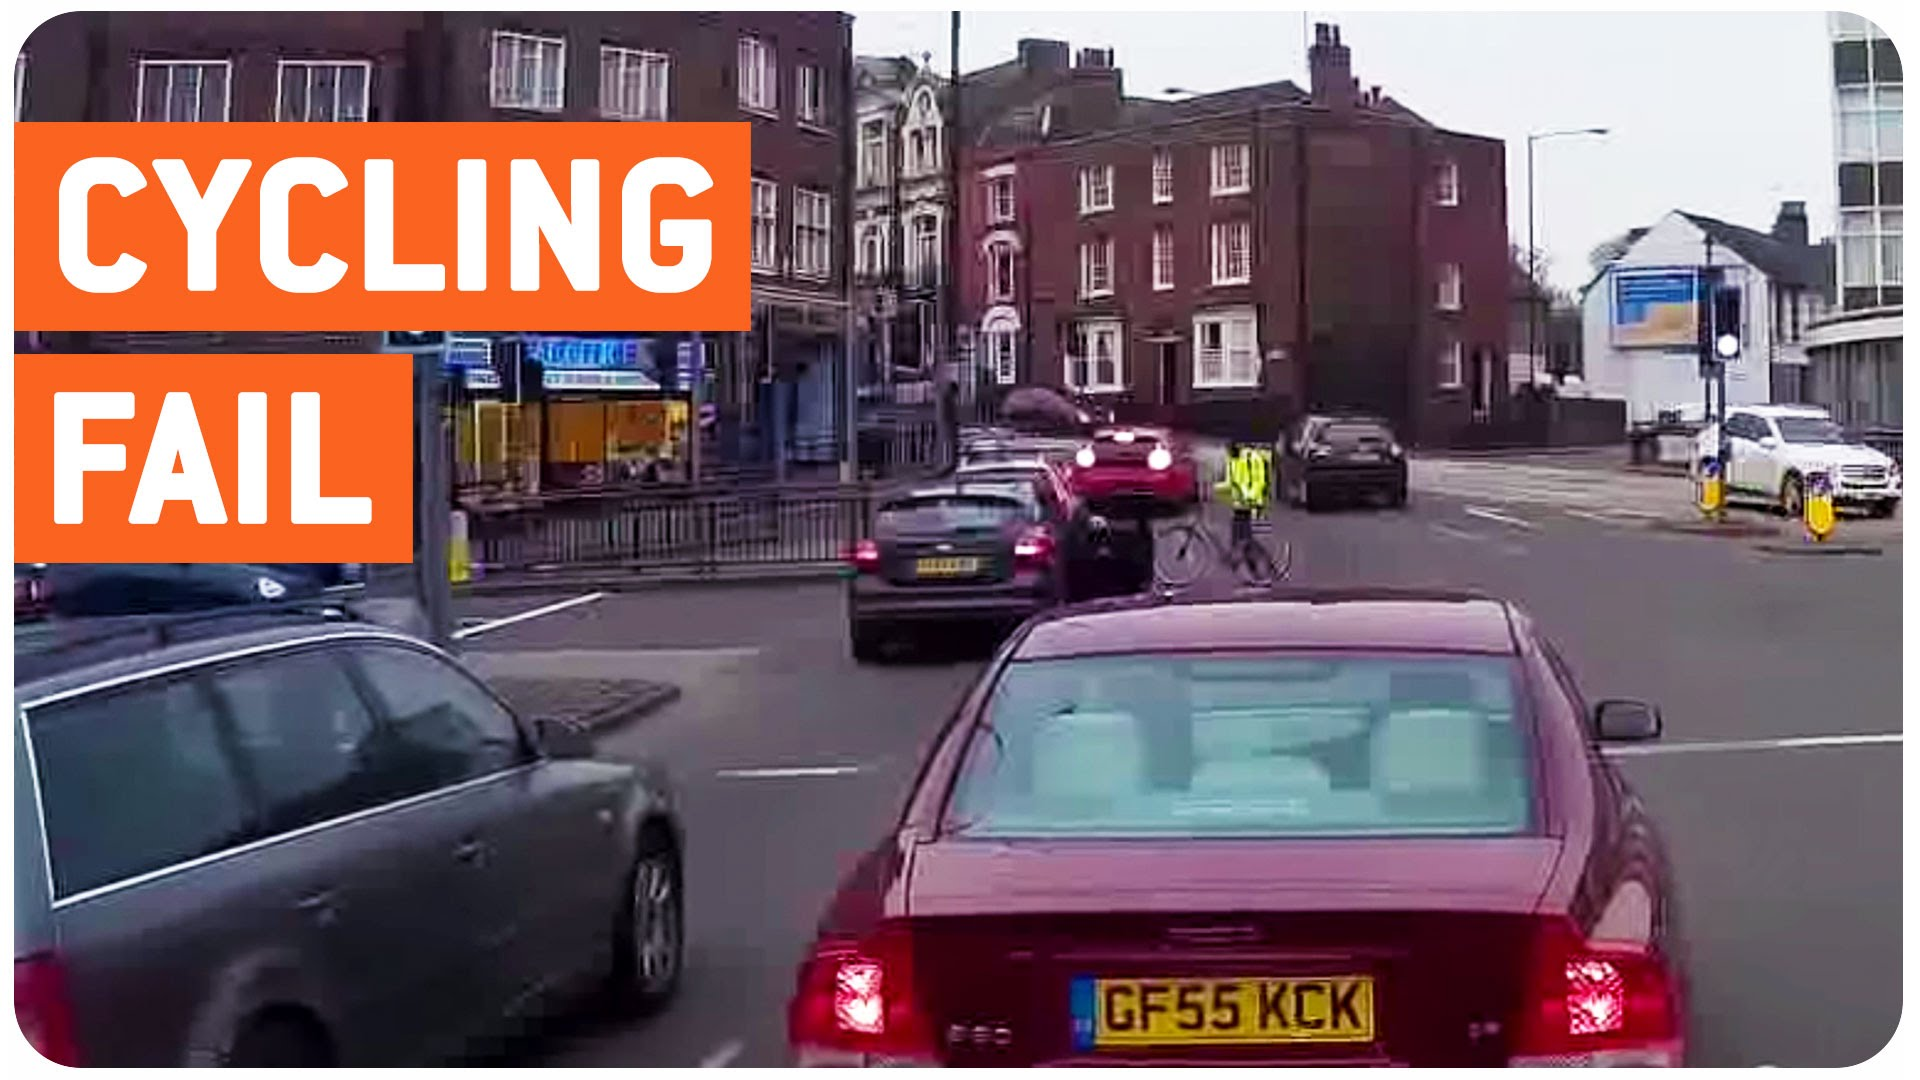 Cyclist passes red and hits car!